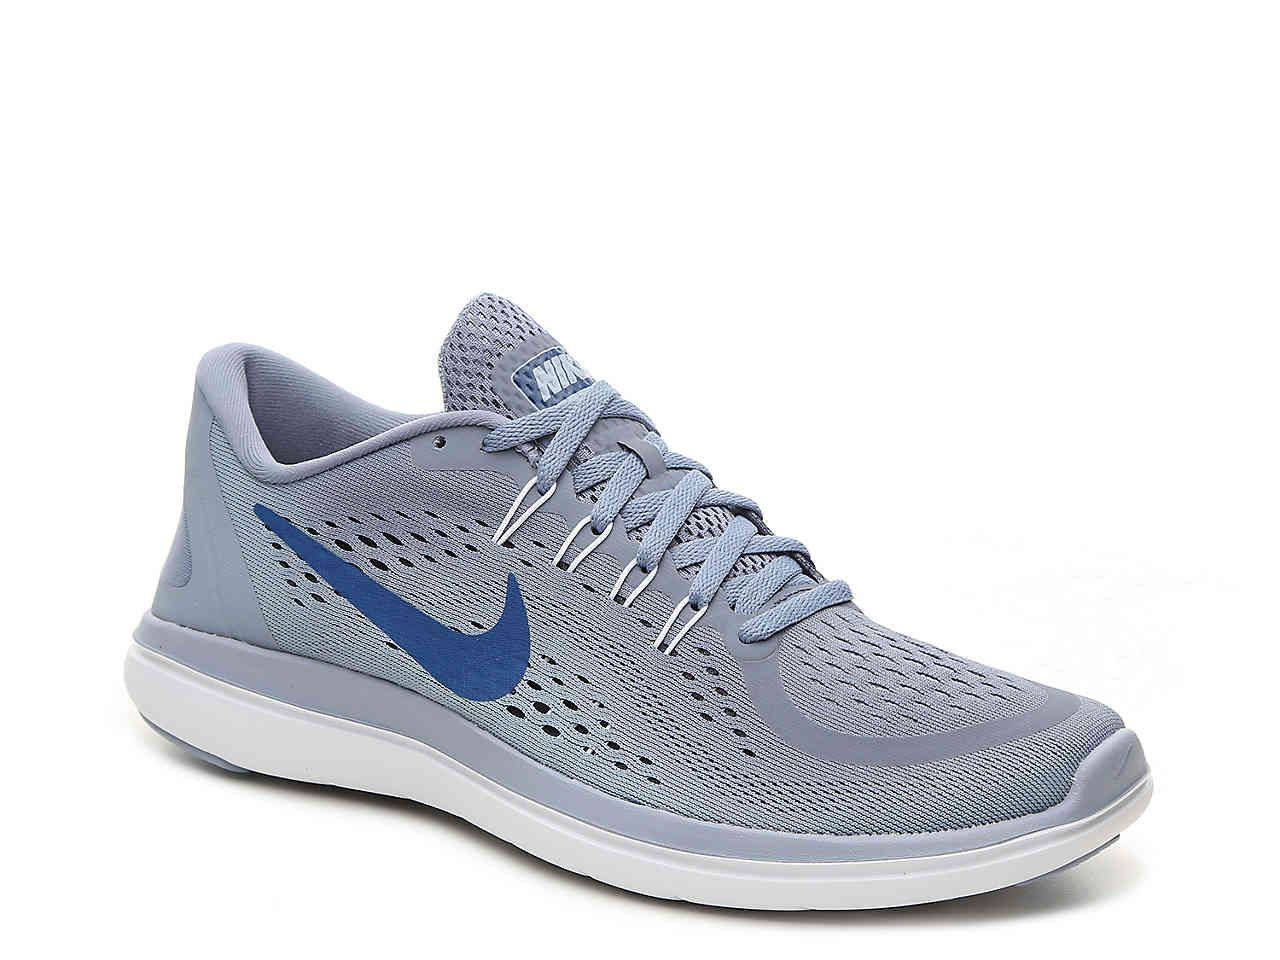 76bdc673e46  85 - DSW - Nike - Flex 2017 RN Lightweight Running Shoe in grey   blue